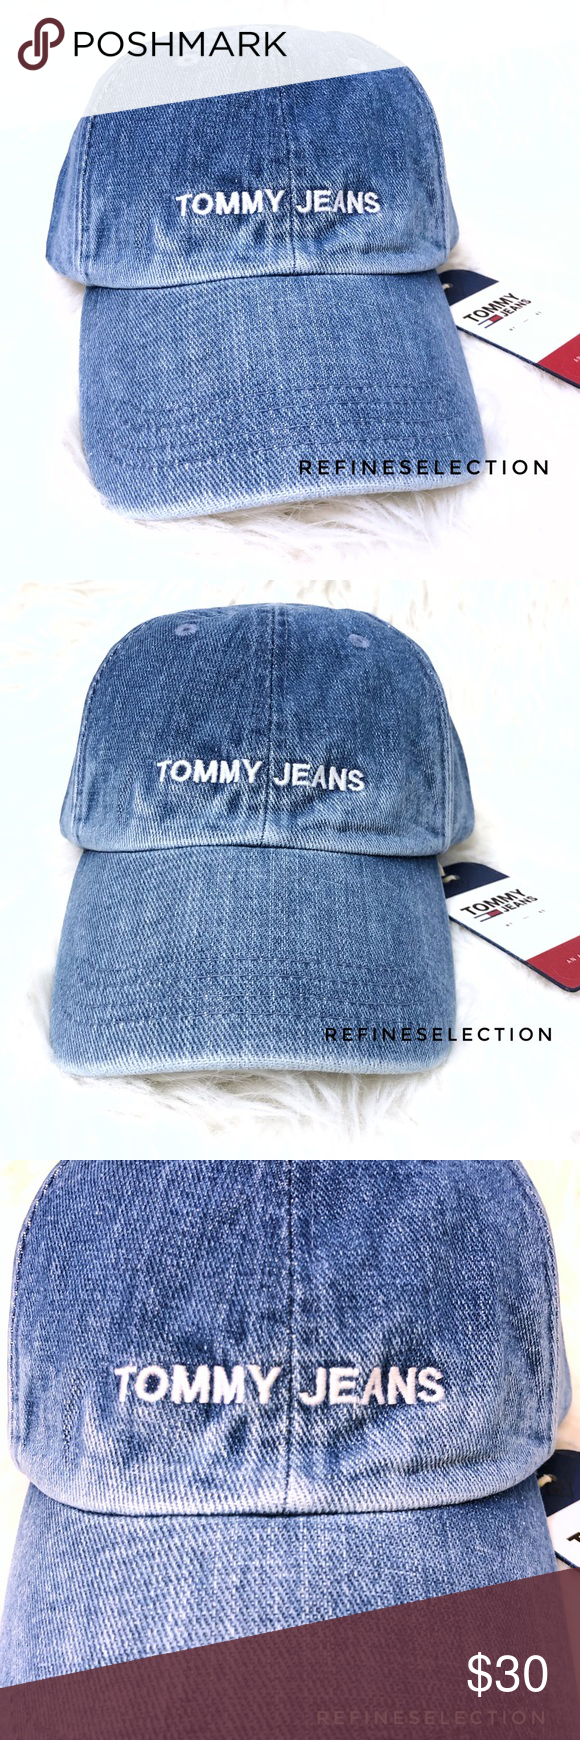 Tommy Hilfiger Jeans Washed Denim Snapback Hat Brand new with tags ... a19754fea958